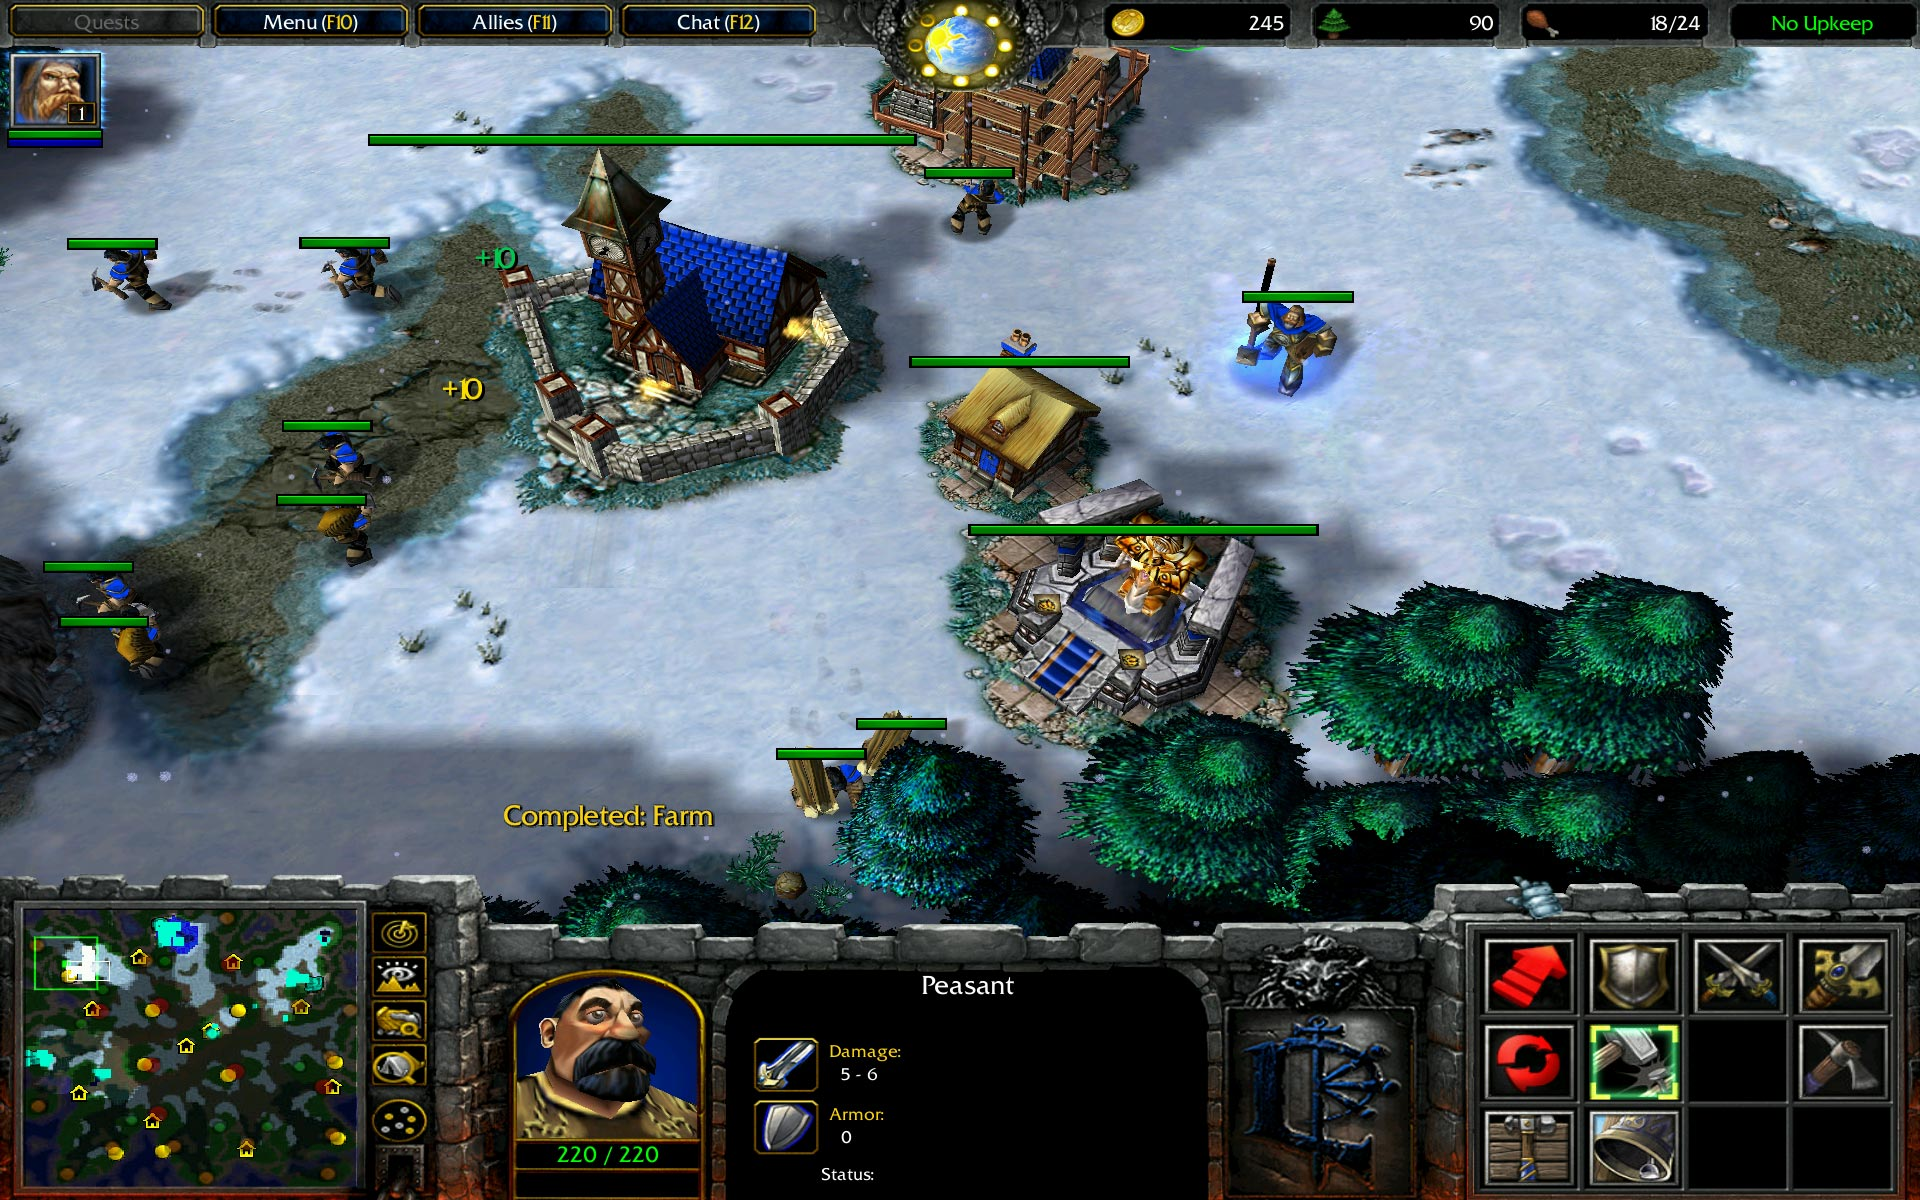 warcraft-3-human-base-paladin-snow-map